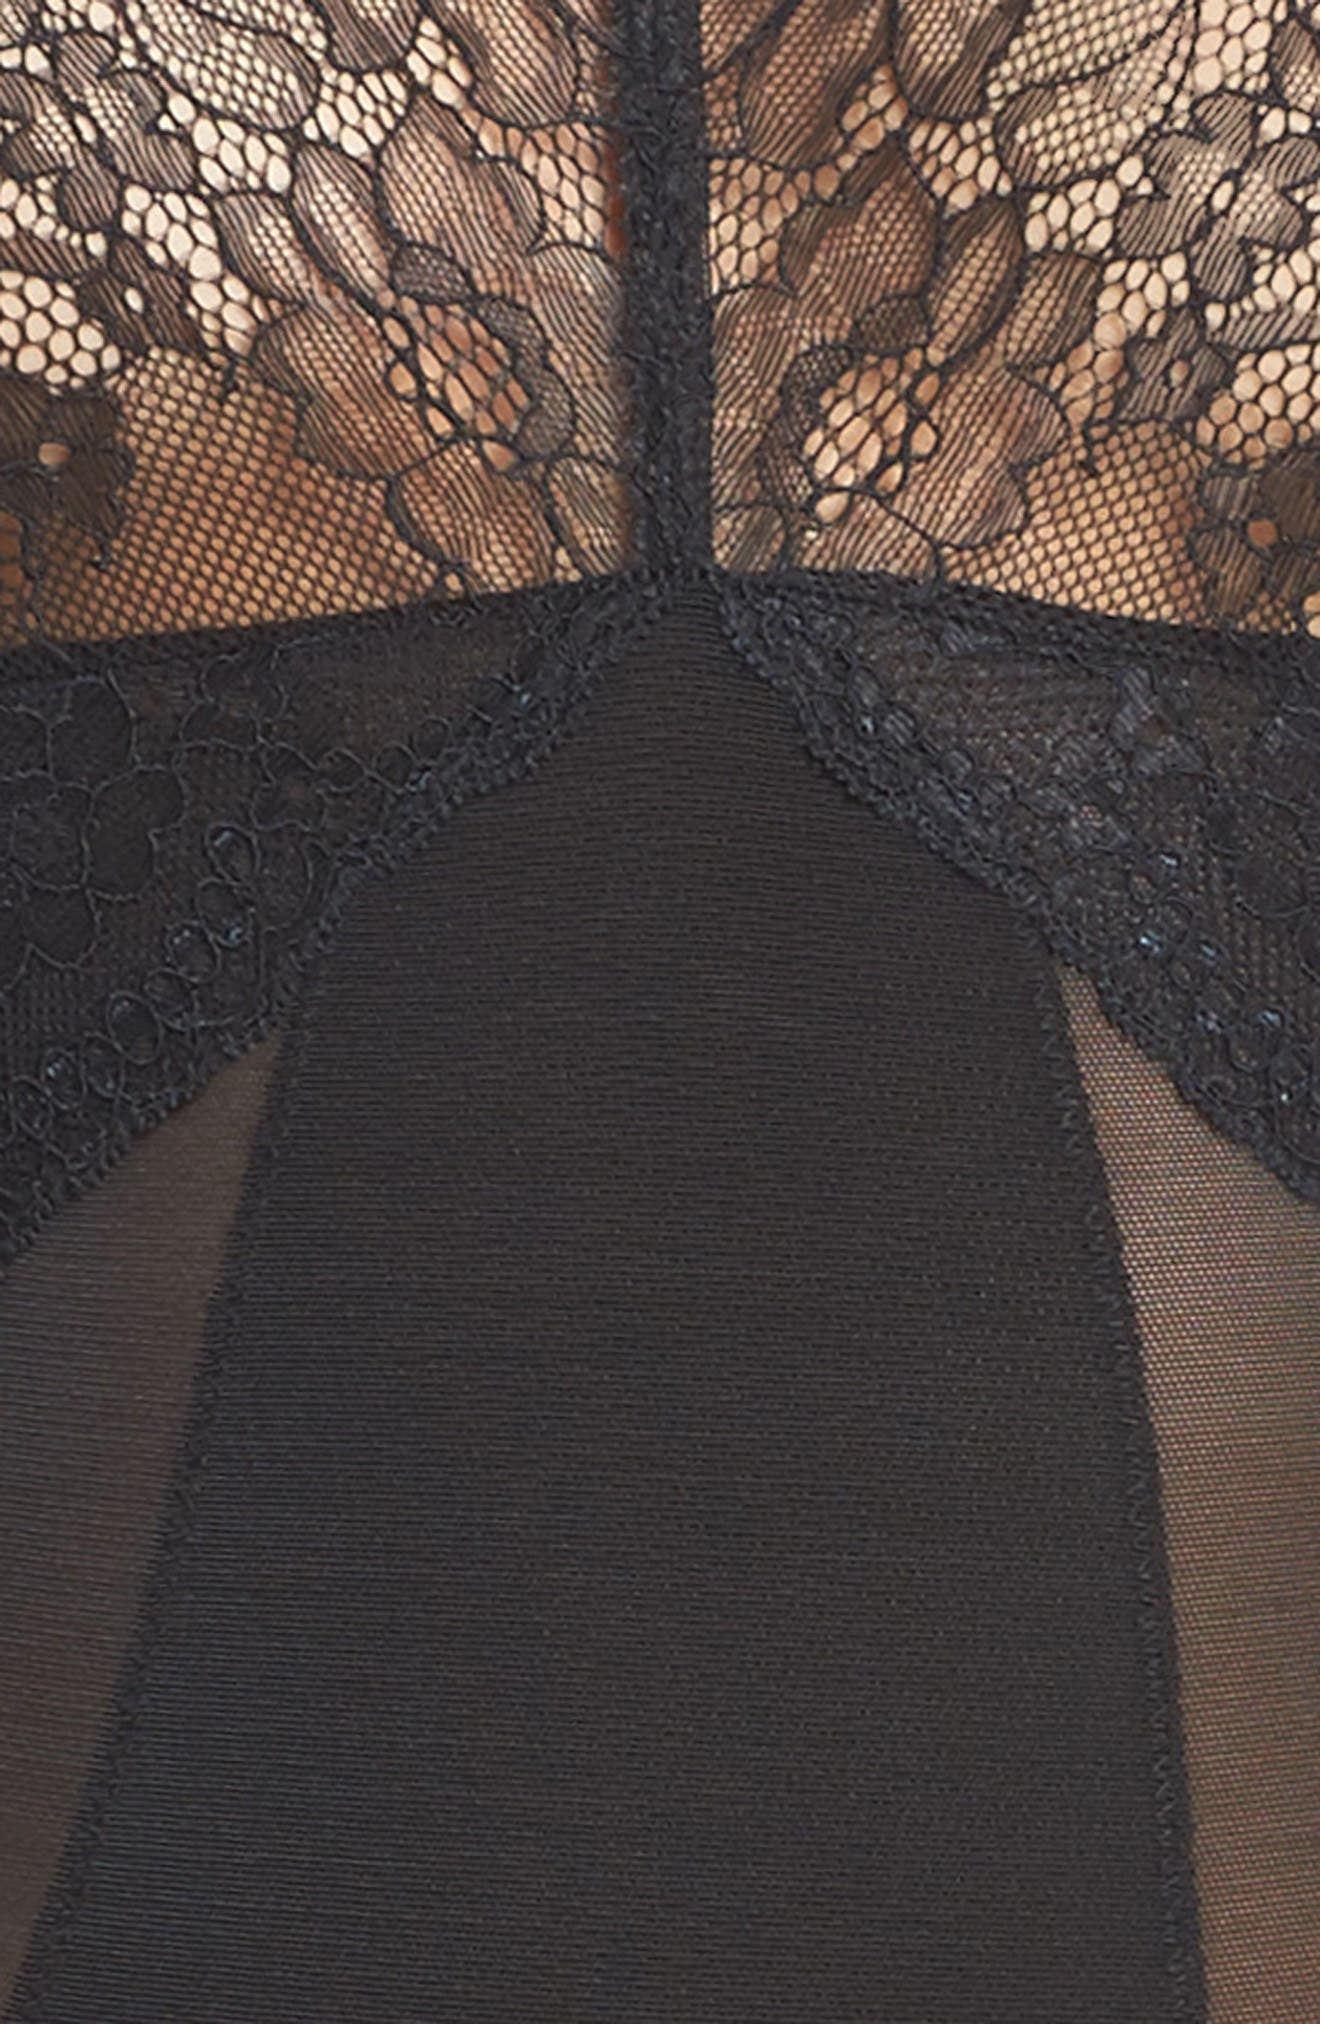 SPANX<SUP>®</SUP>, Spotlight On Lace Bodysuit, Alternate thumbnail 5, color, VERY BLACK